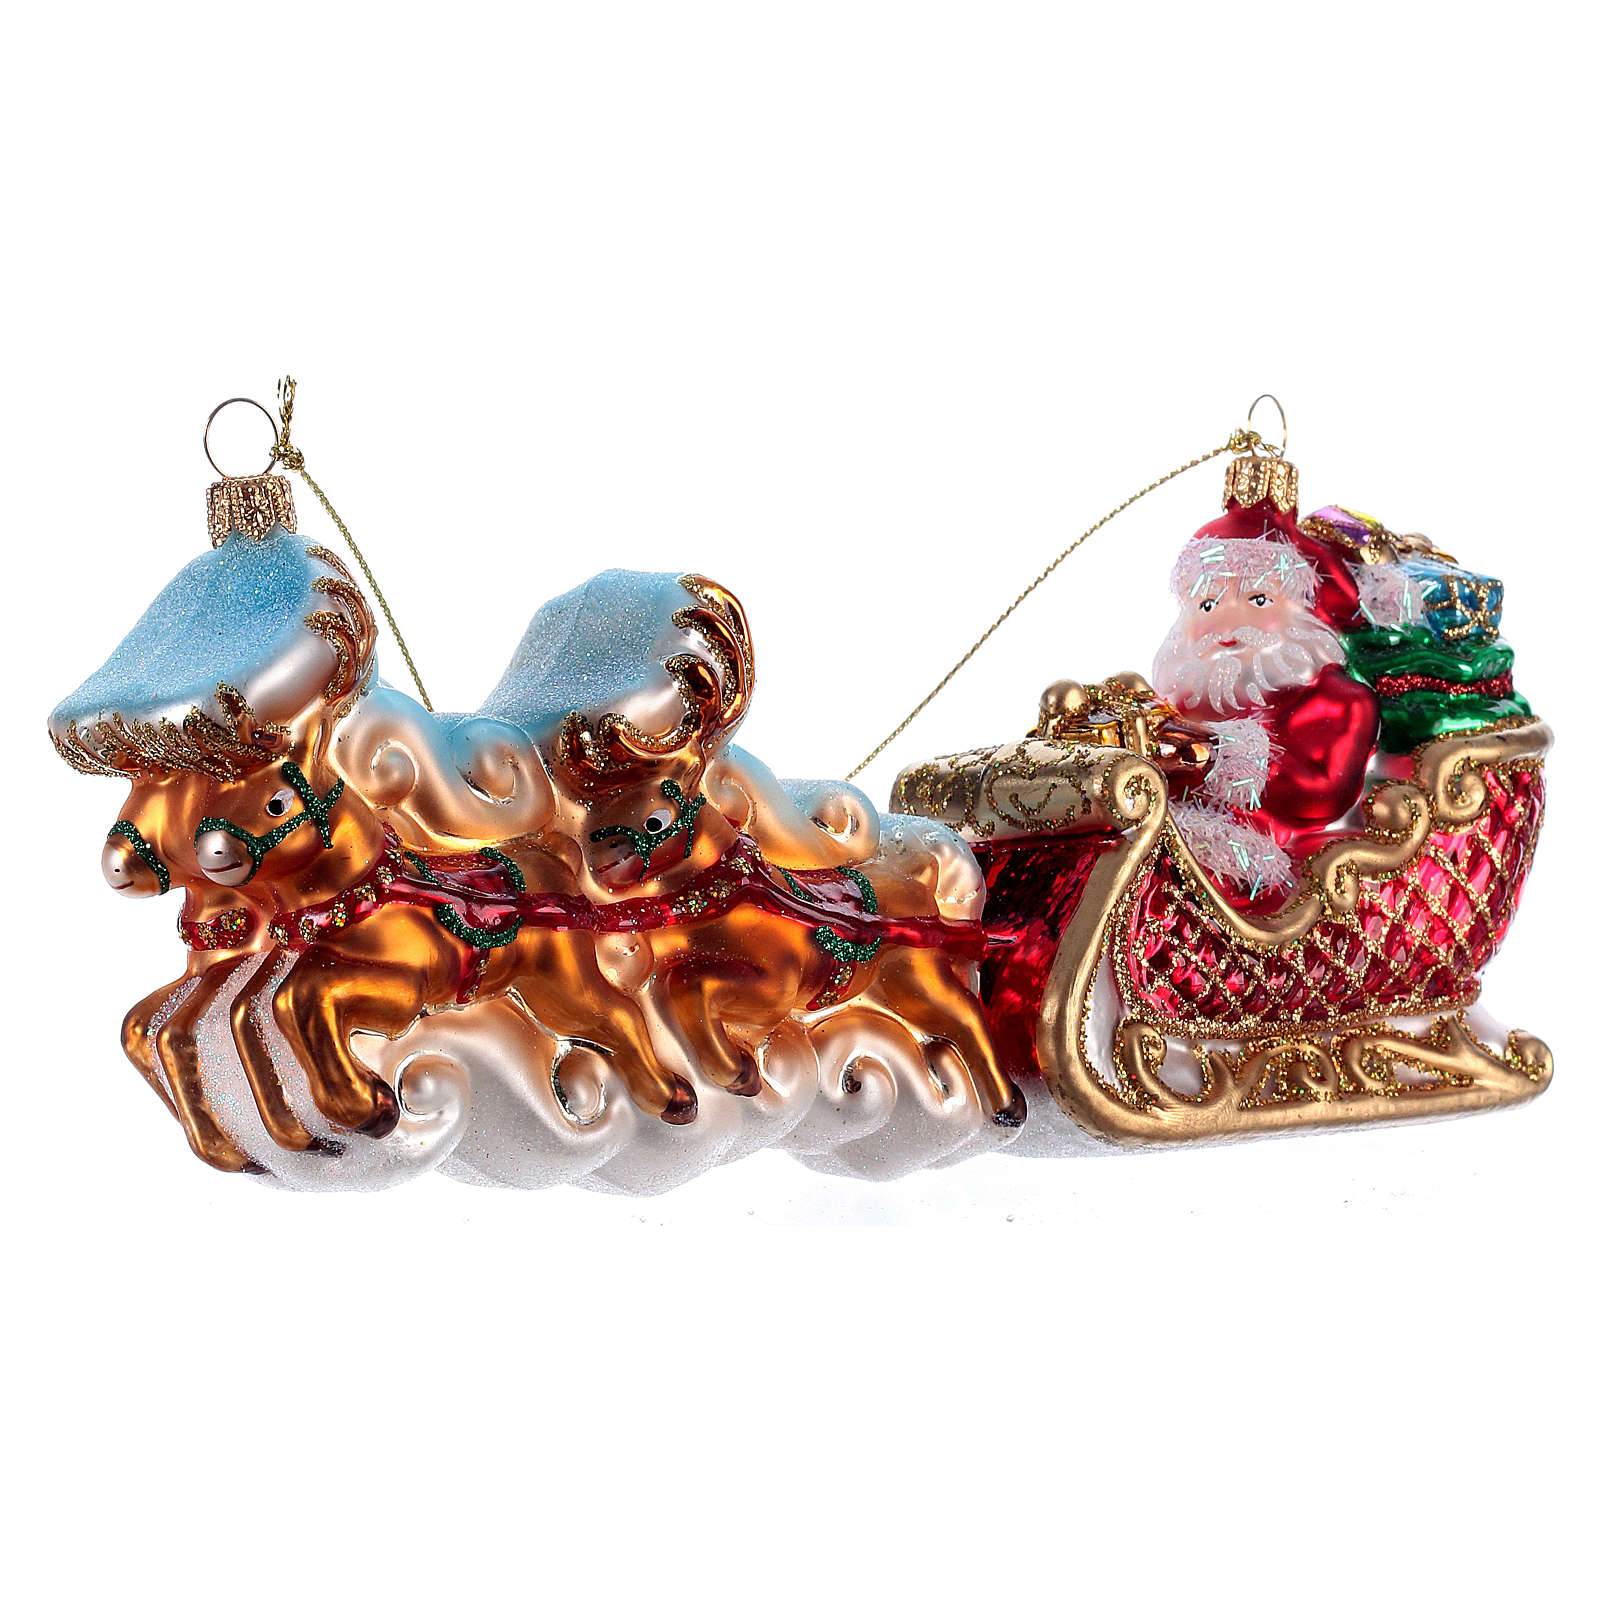 Christmas tree decoration Santa Claus with reindeers in blown glass 4